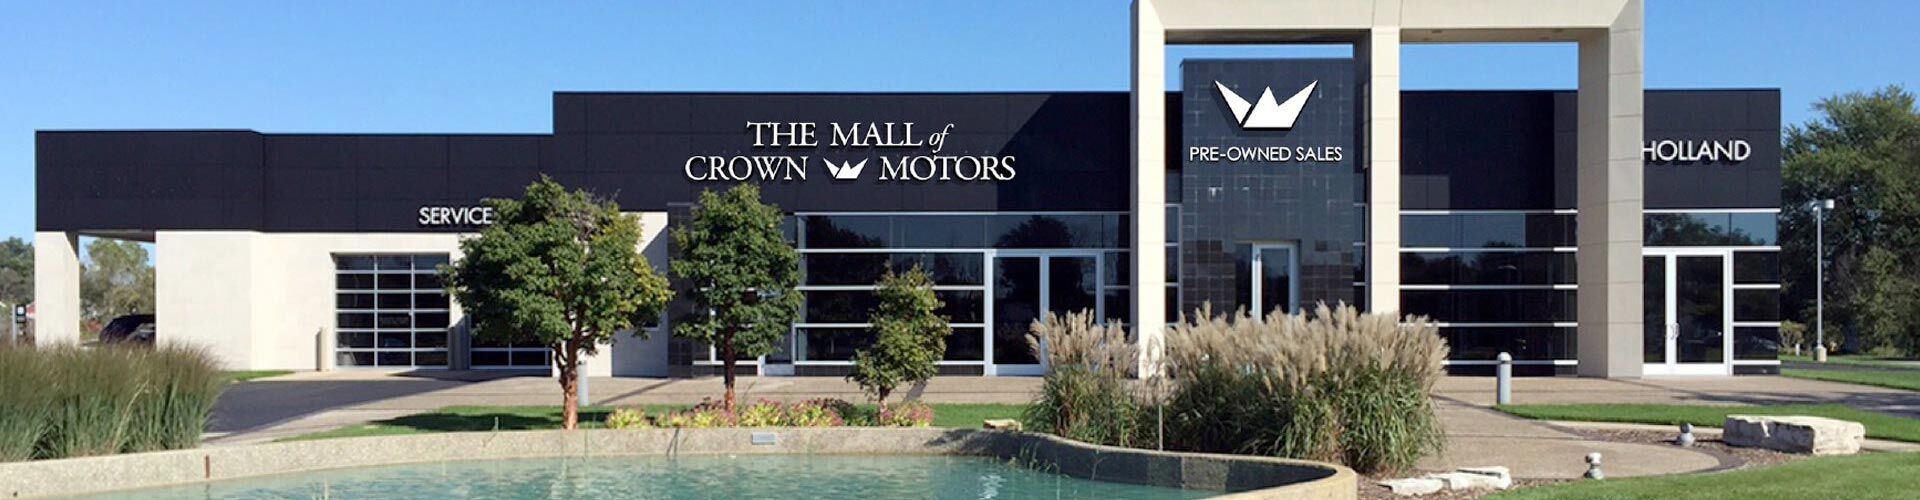 Mall of Crown Motors